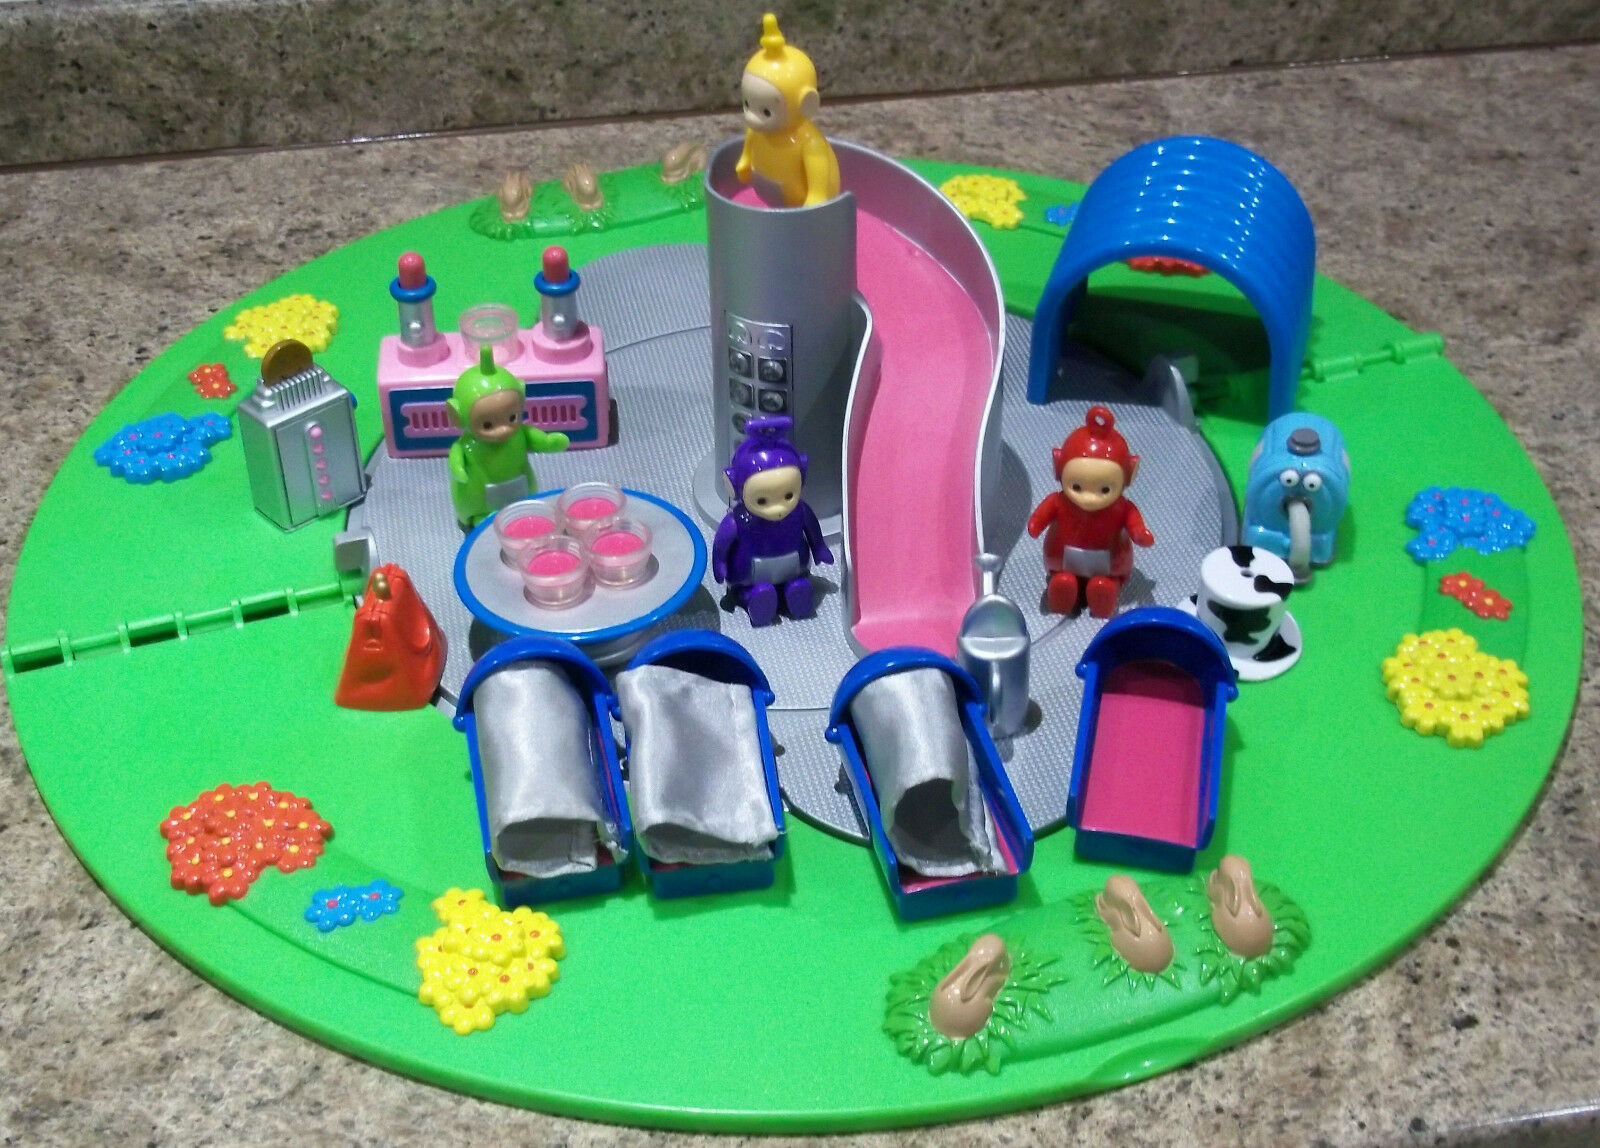 VINTAGE    HOME ON THE THE THE HILL PLAY SET  WITH 4 X TELETUBBIES 43ad15